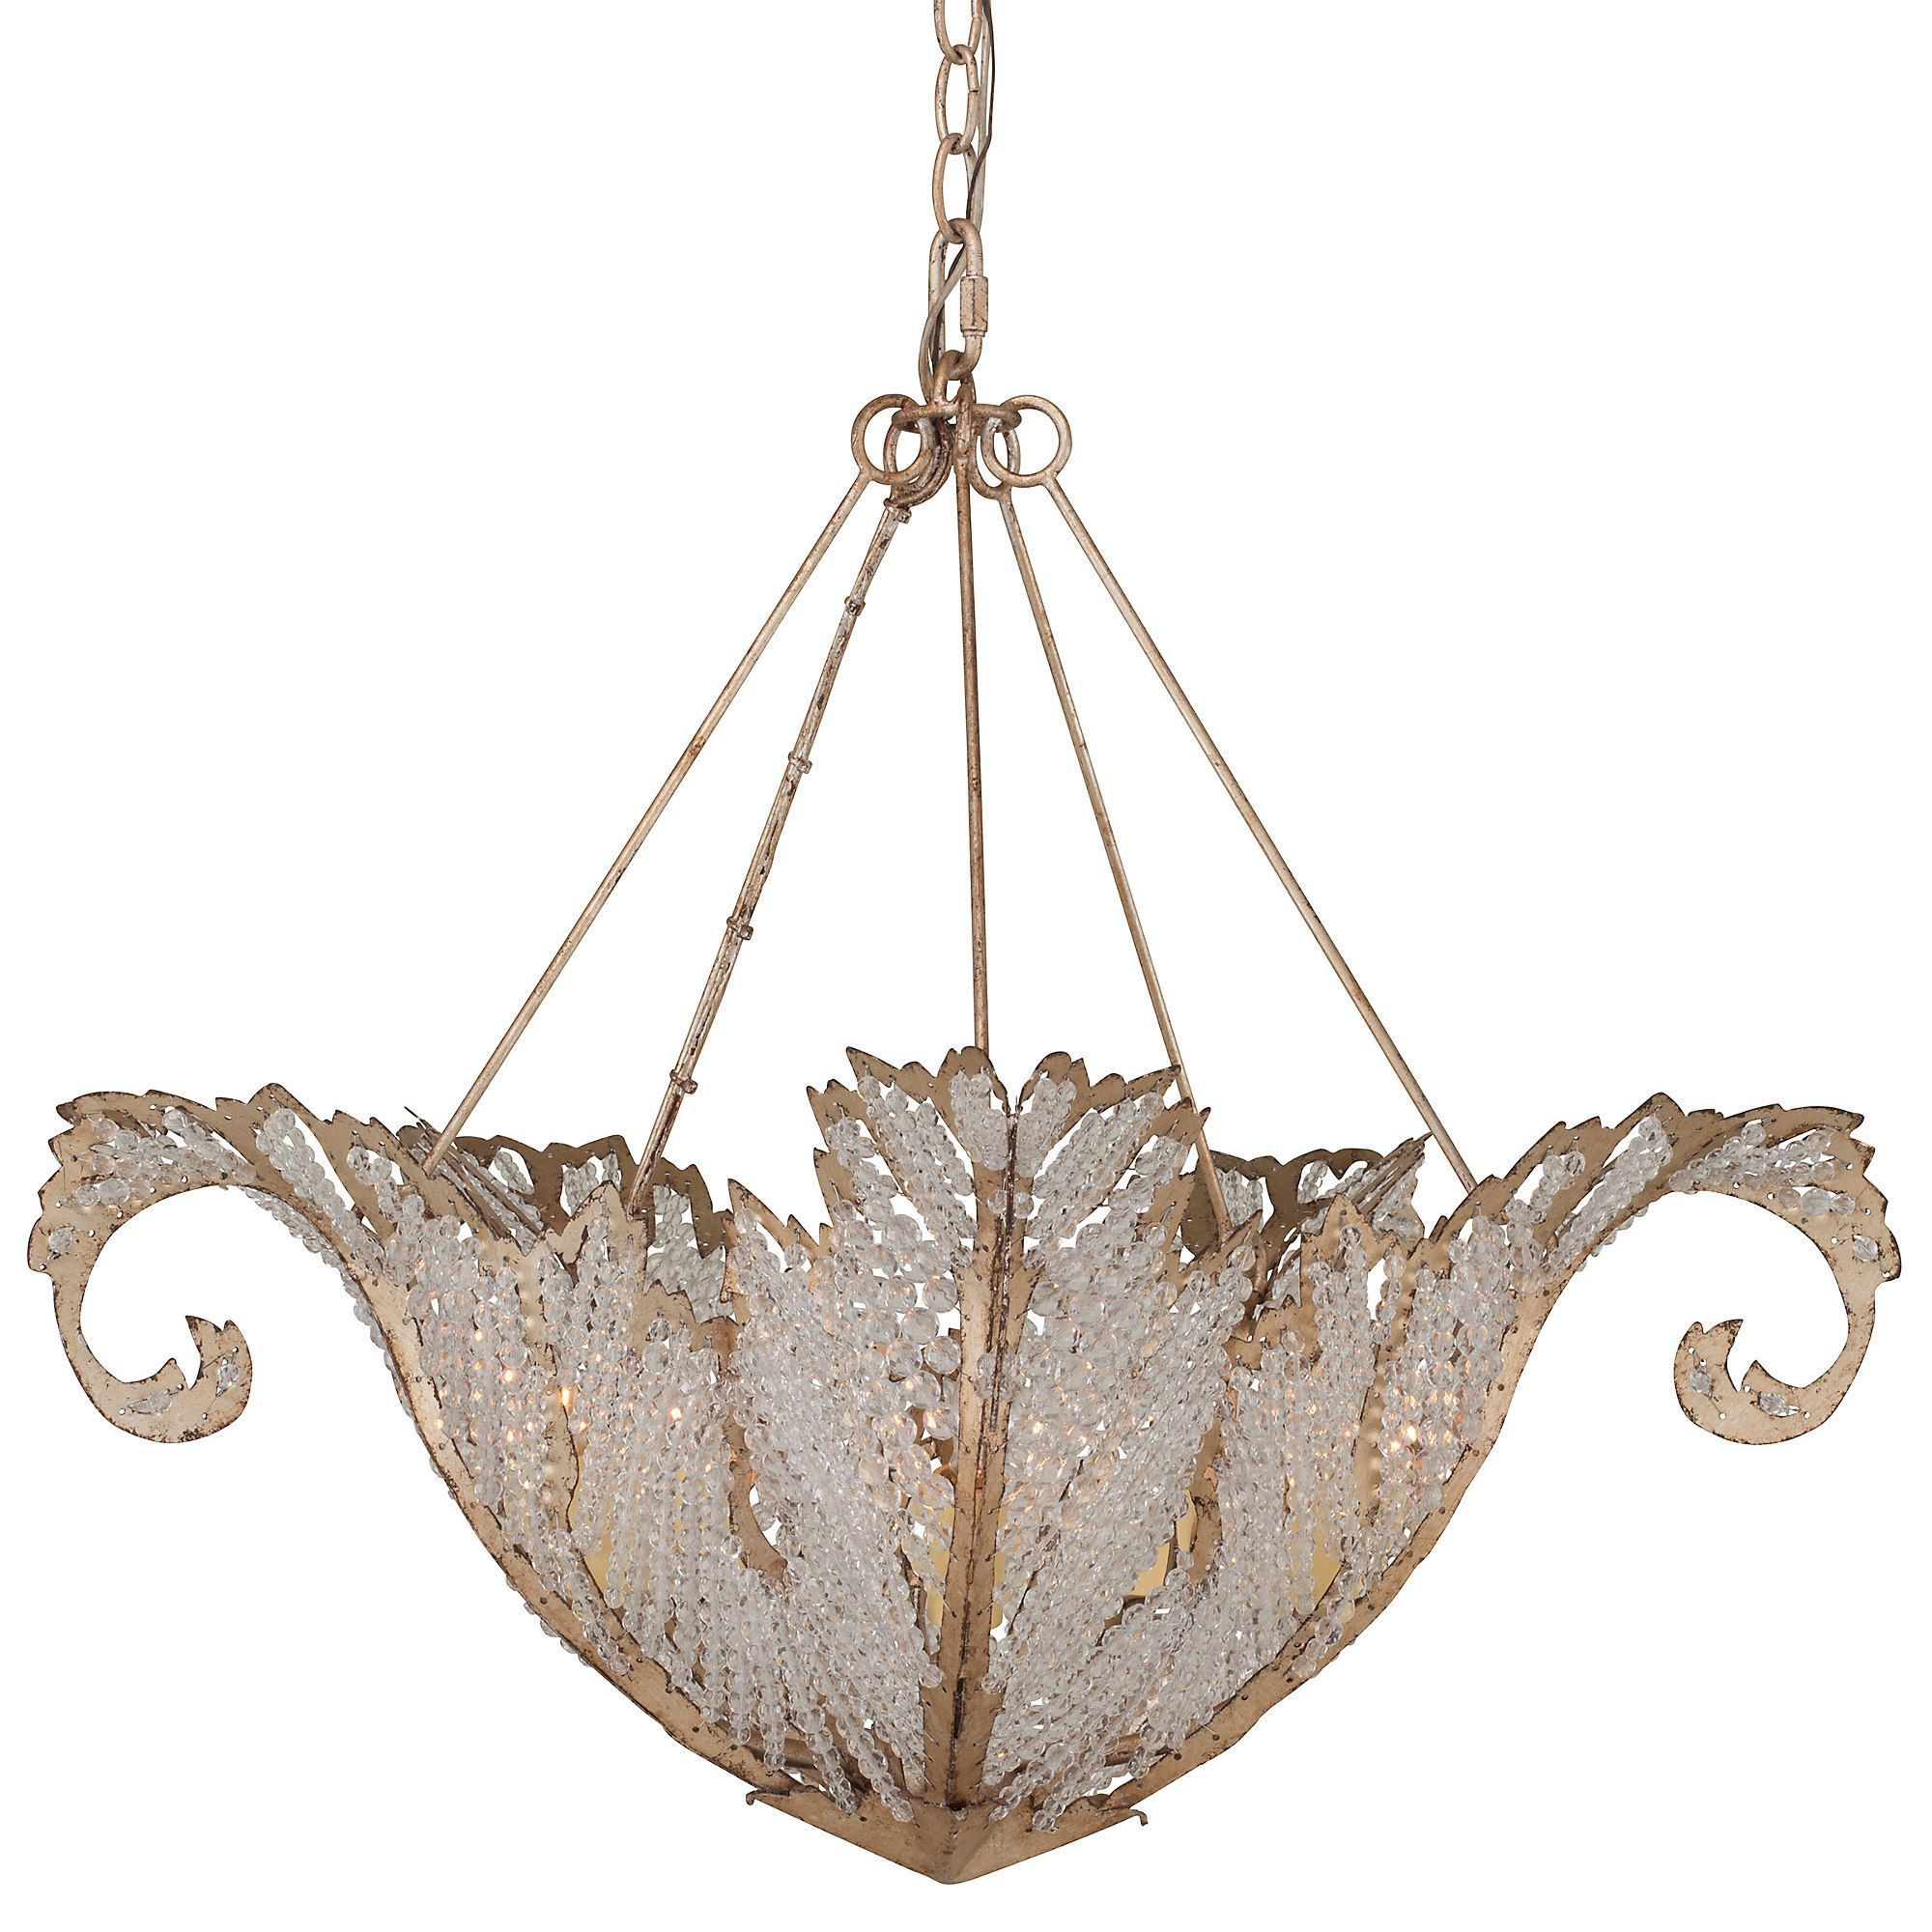 Available online exclusively at One Kings Lane: This fixture is crafted of steel with a beautifully shaped frame that's filled with an abundance of glass beading. Hardwired.